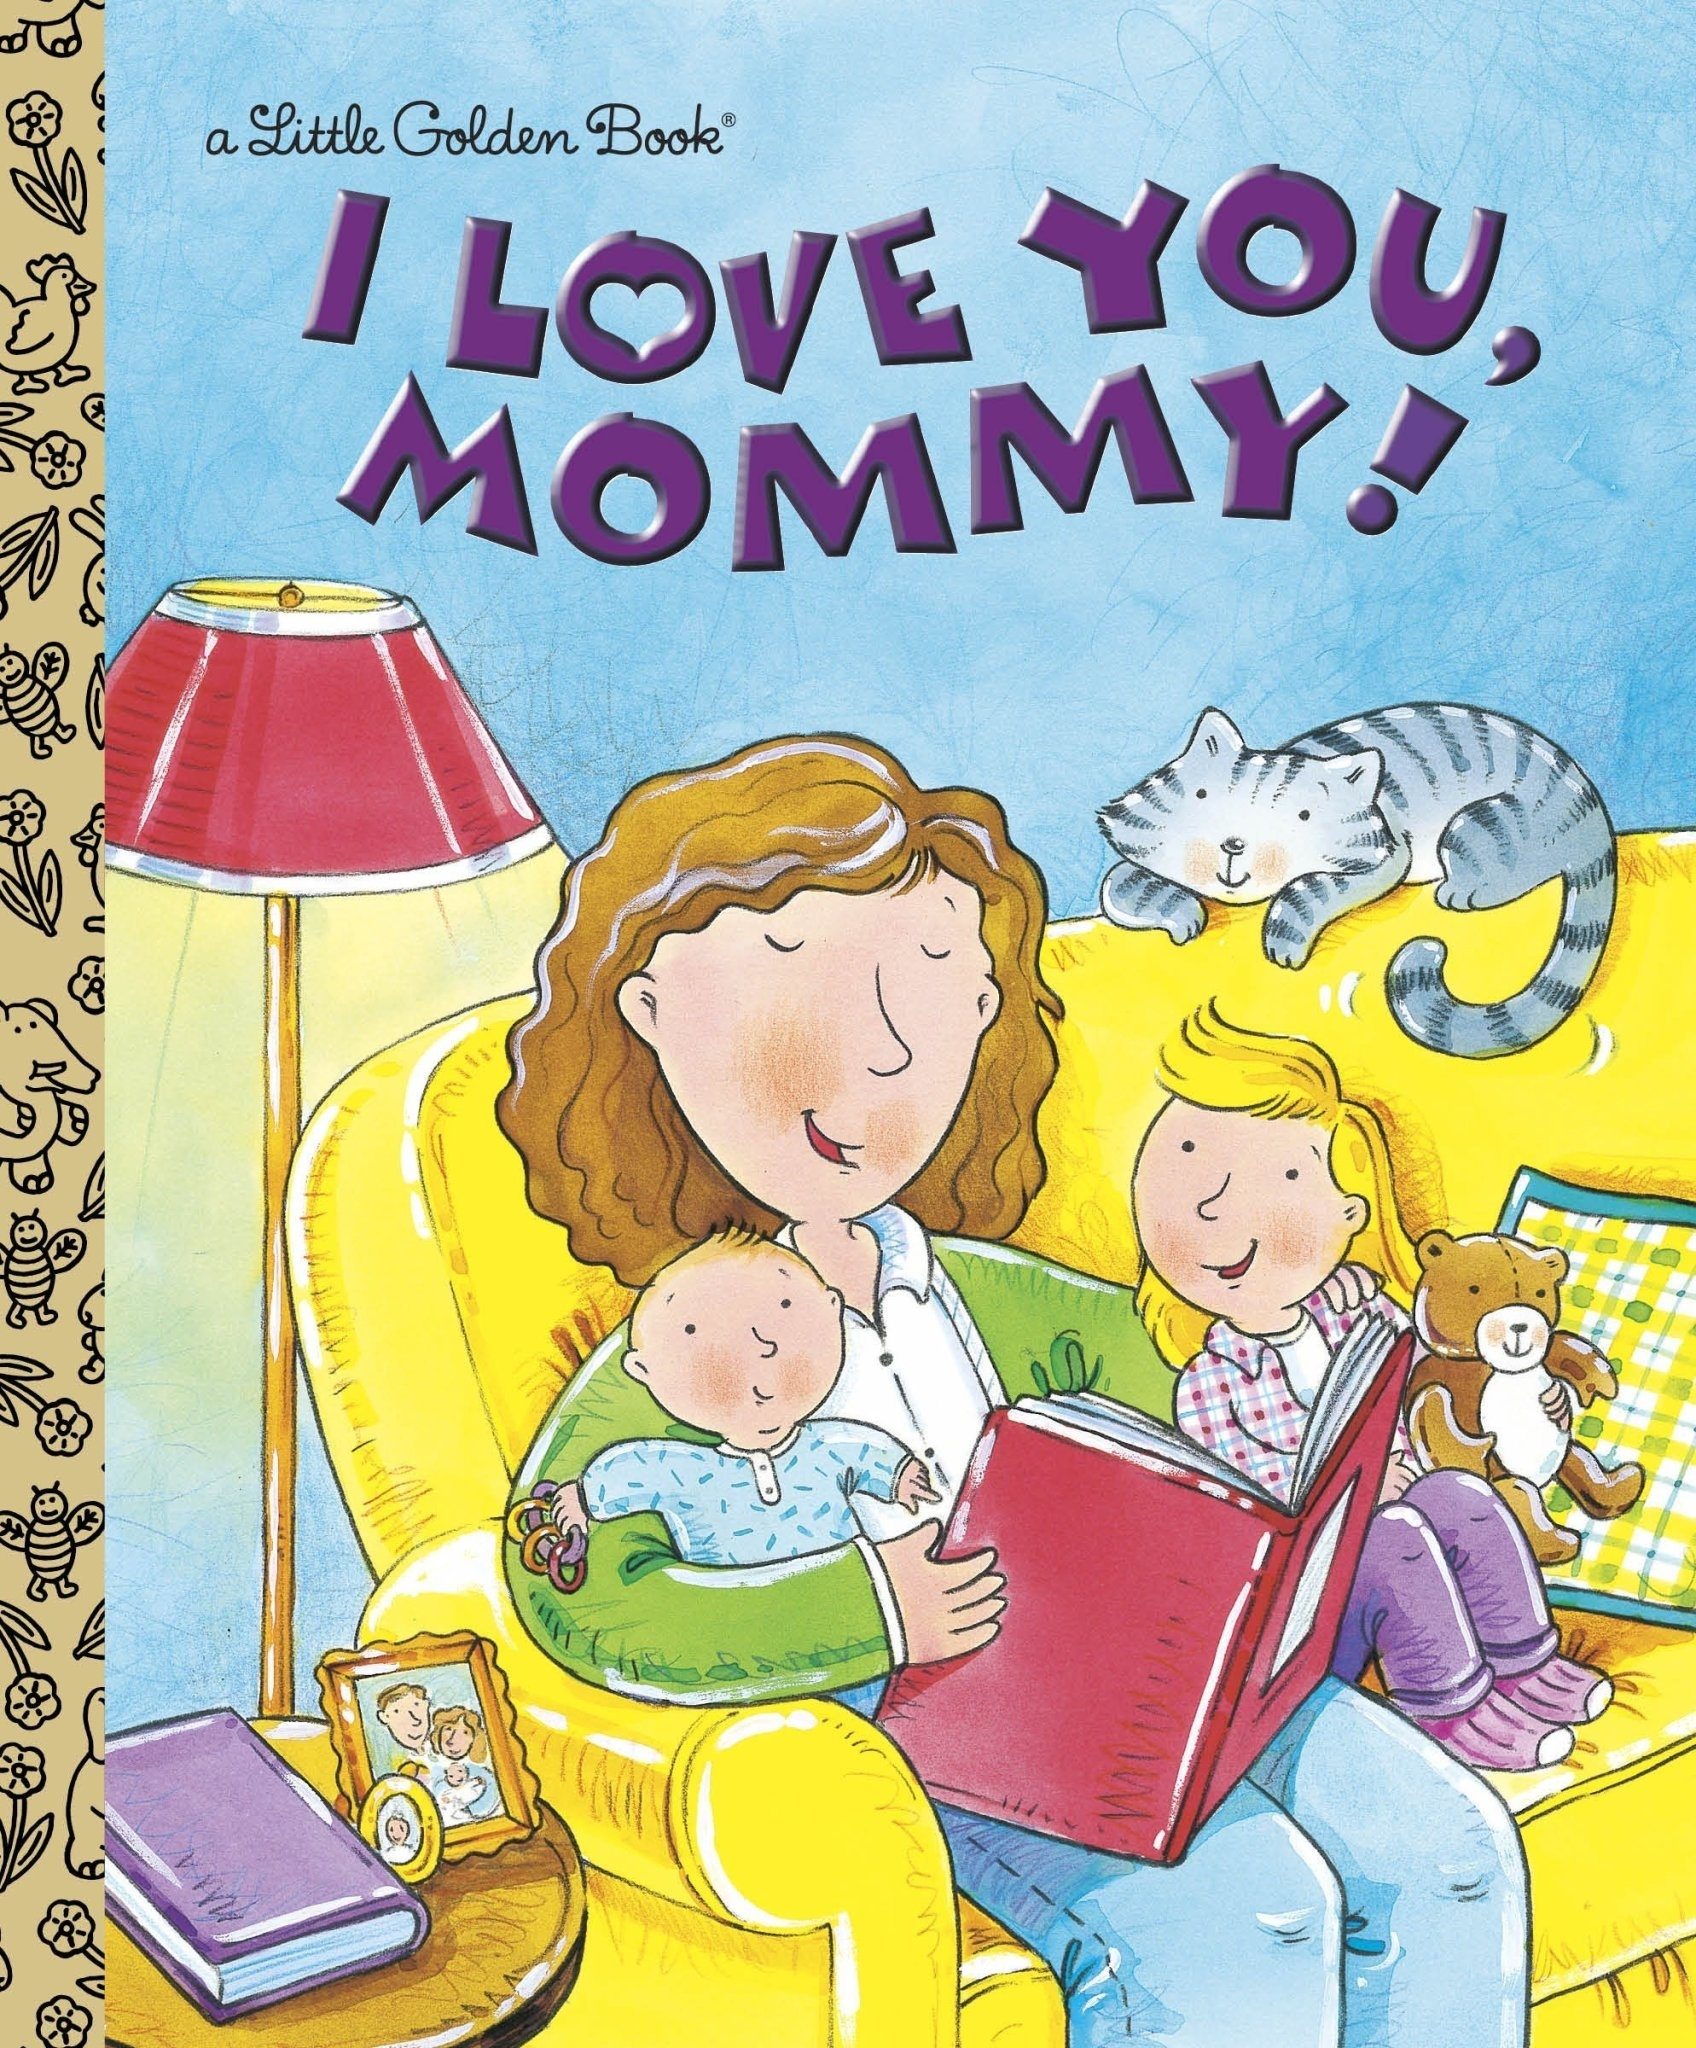 I Love You Mommy - Little Golden Book